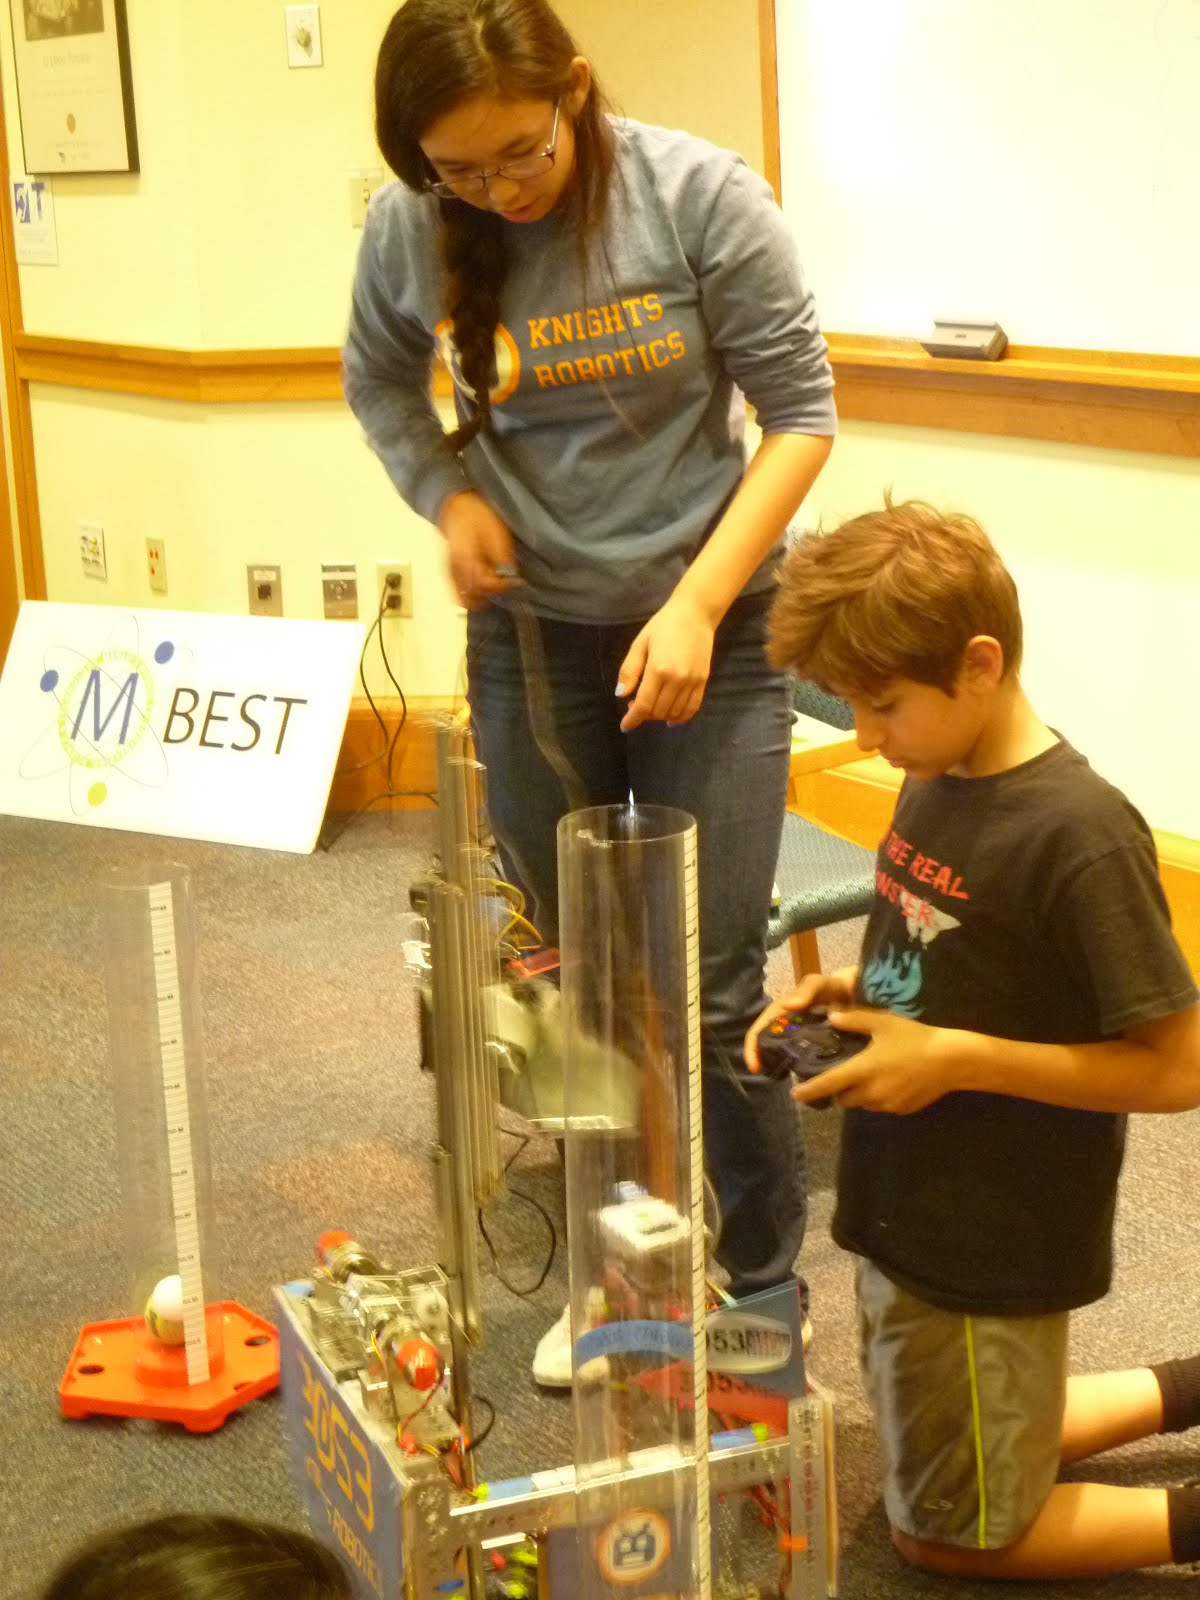 Fun with Robots, Science and Math - created by Youth for Literacy and the Council